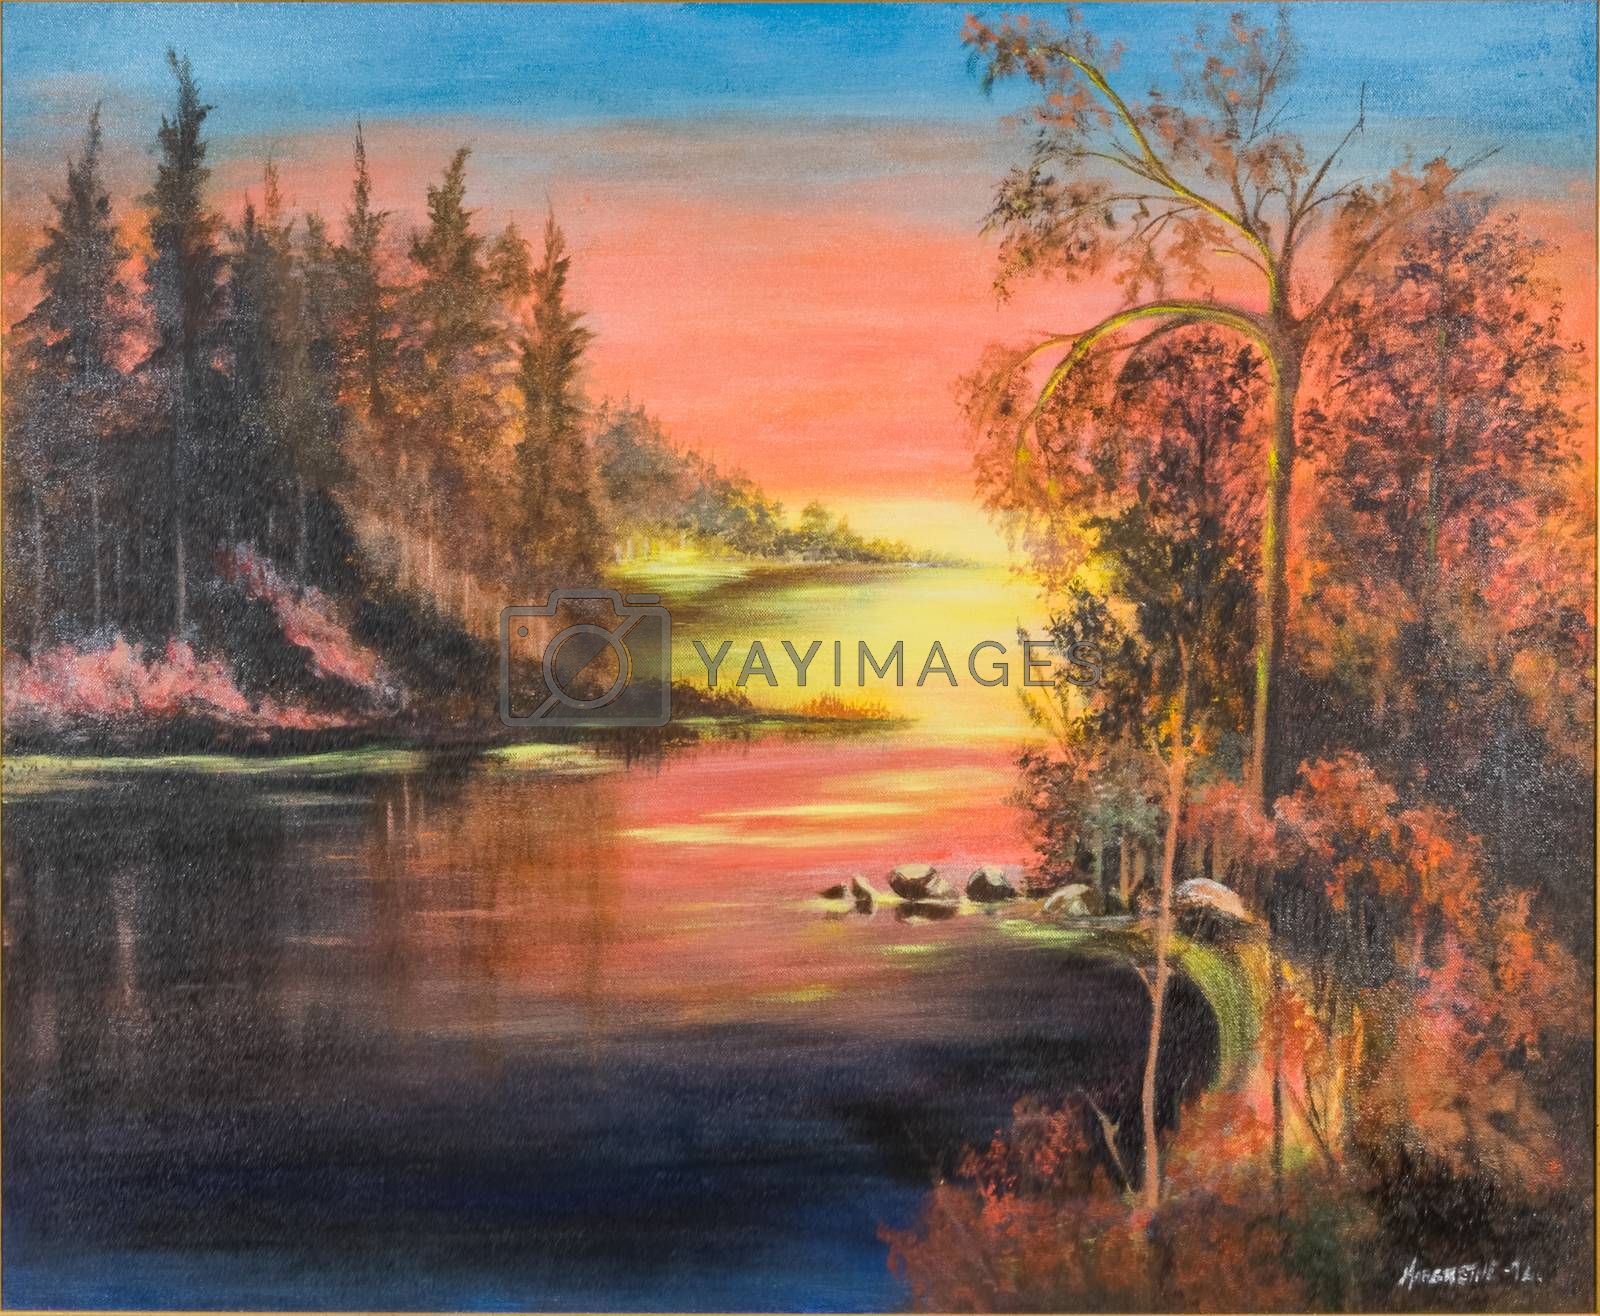 Evening mood with magical lightning at sunset with water and forest. Figurative oil painting on canvas